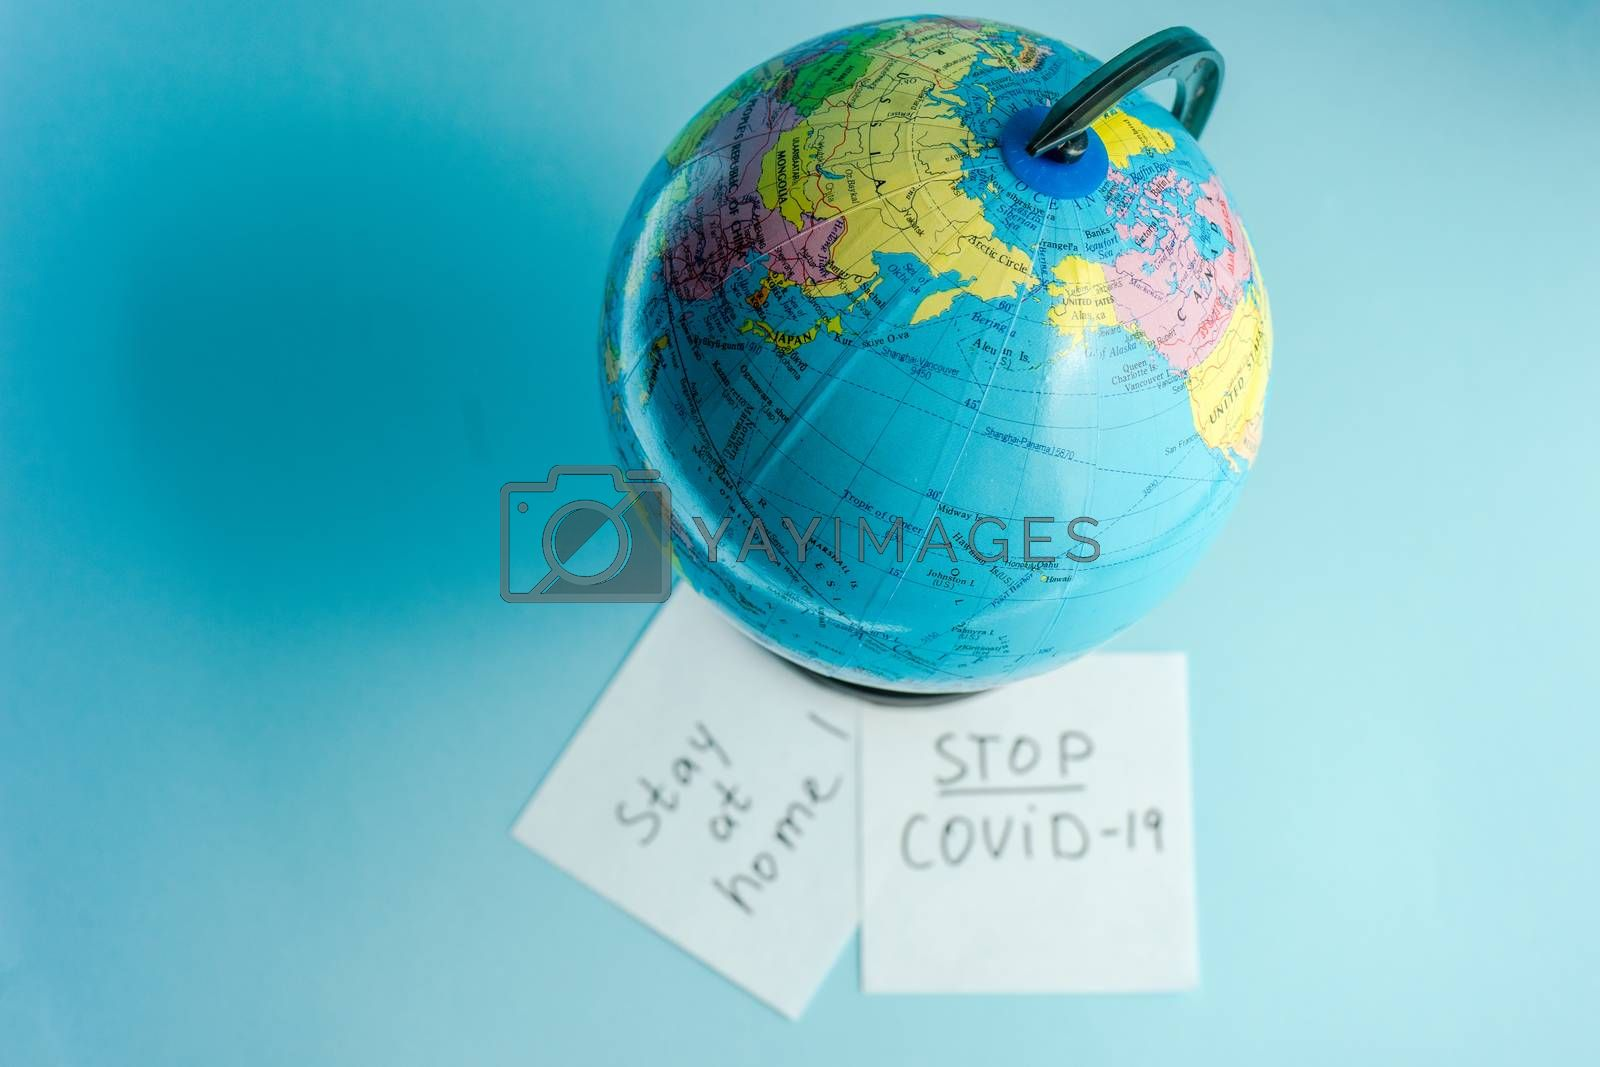 COVID-19 virus concept with Earth globe in face mask on pastel background with note and copy space